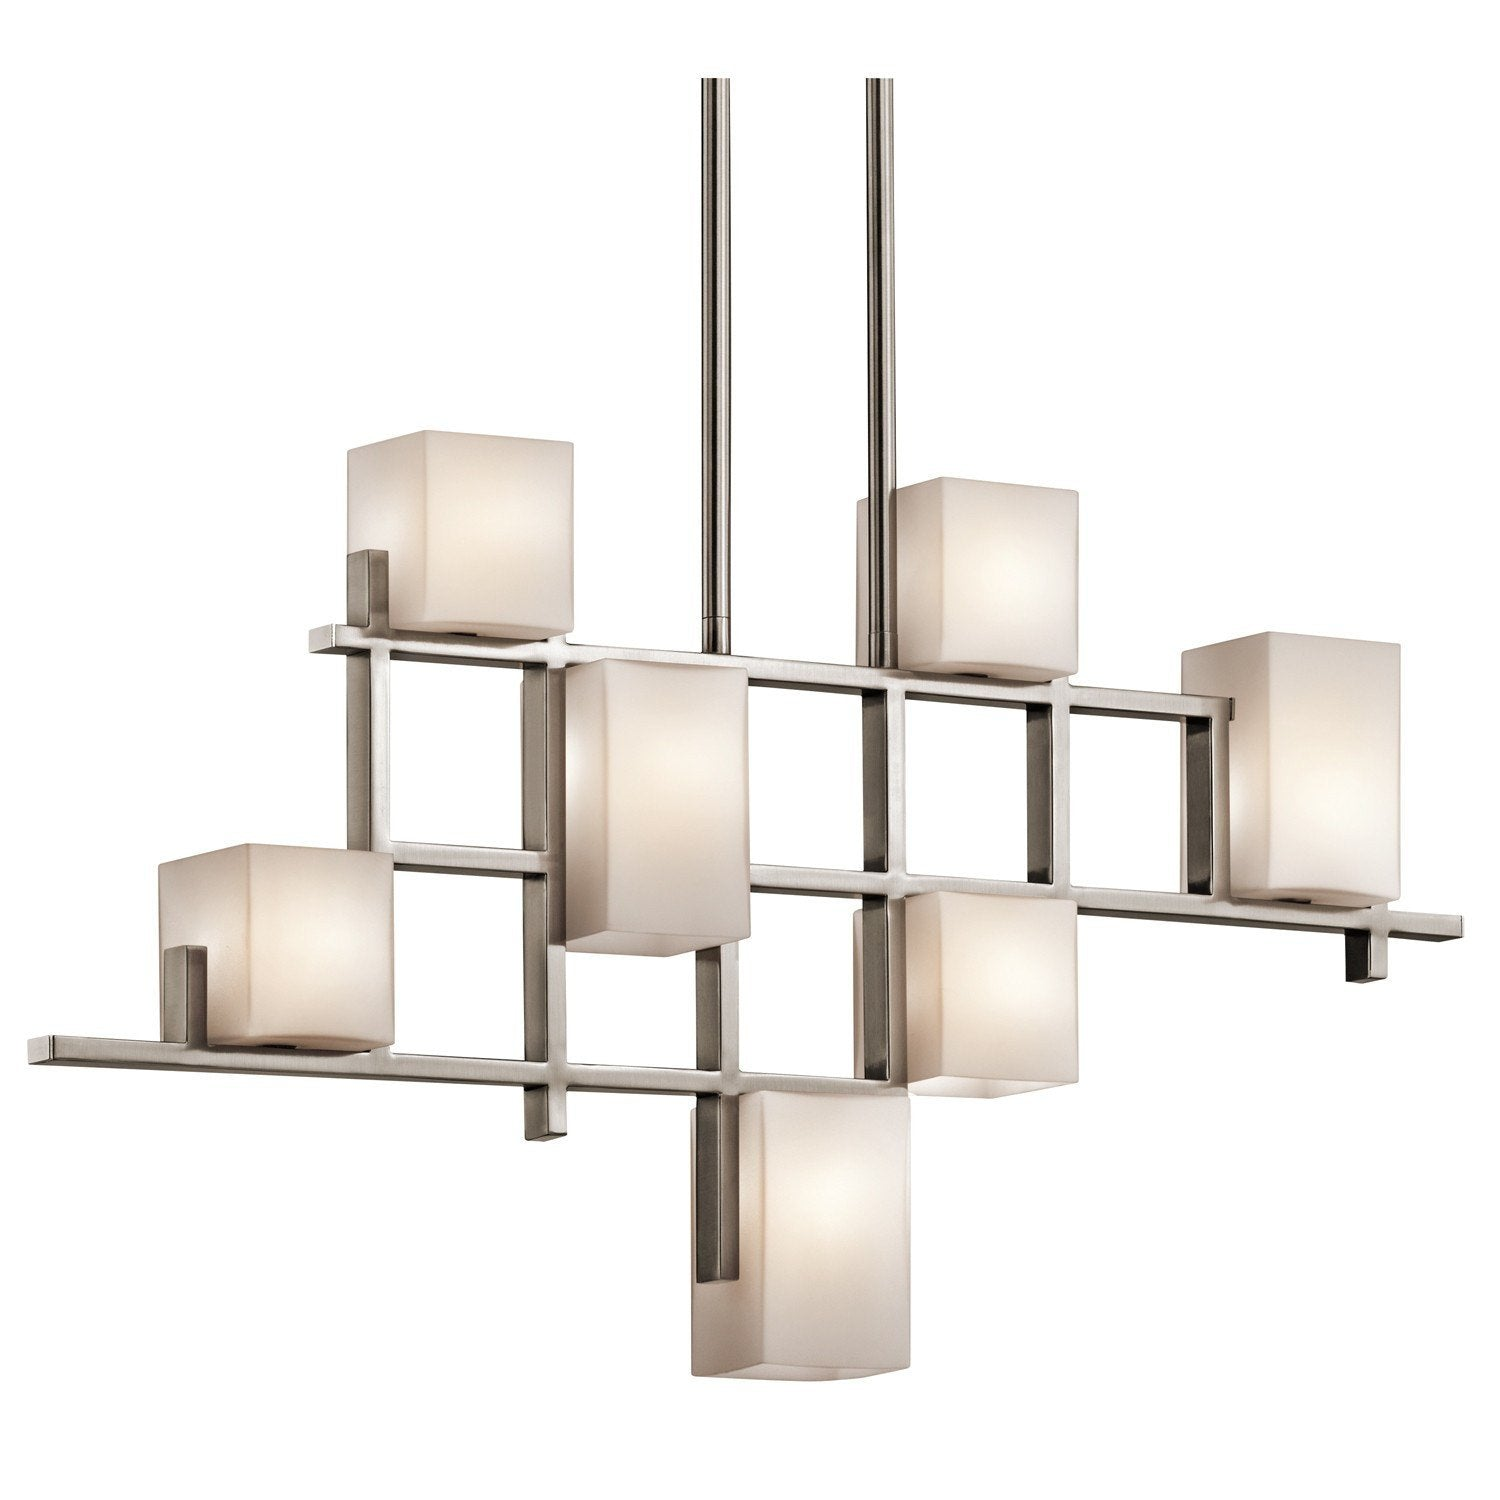 Kichler City Lights 7 Light Linear Chandelier - London Lighting - 1